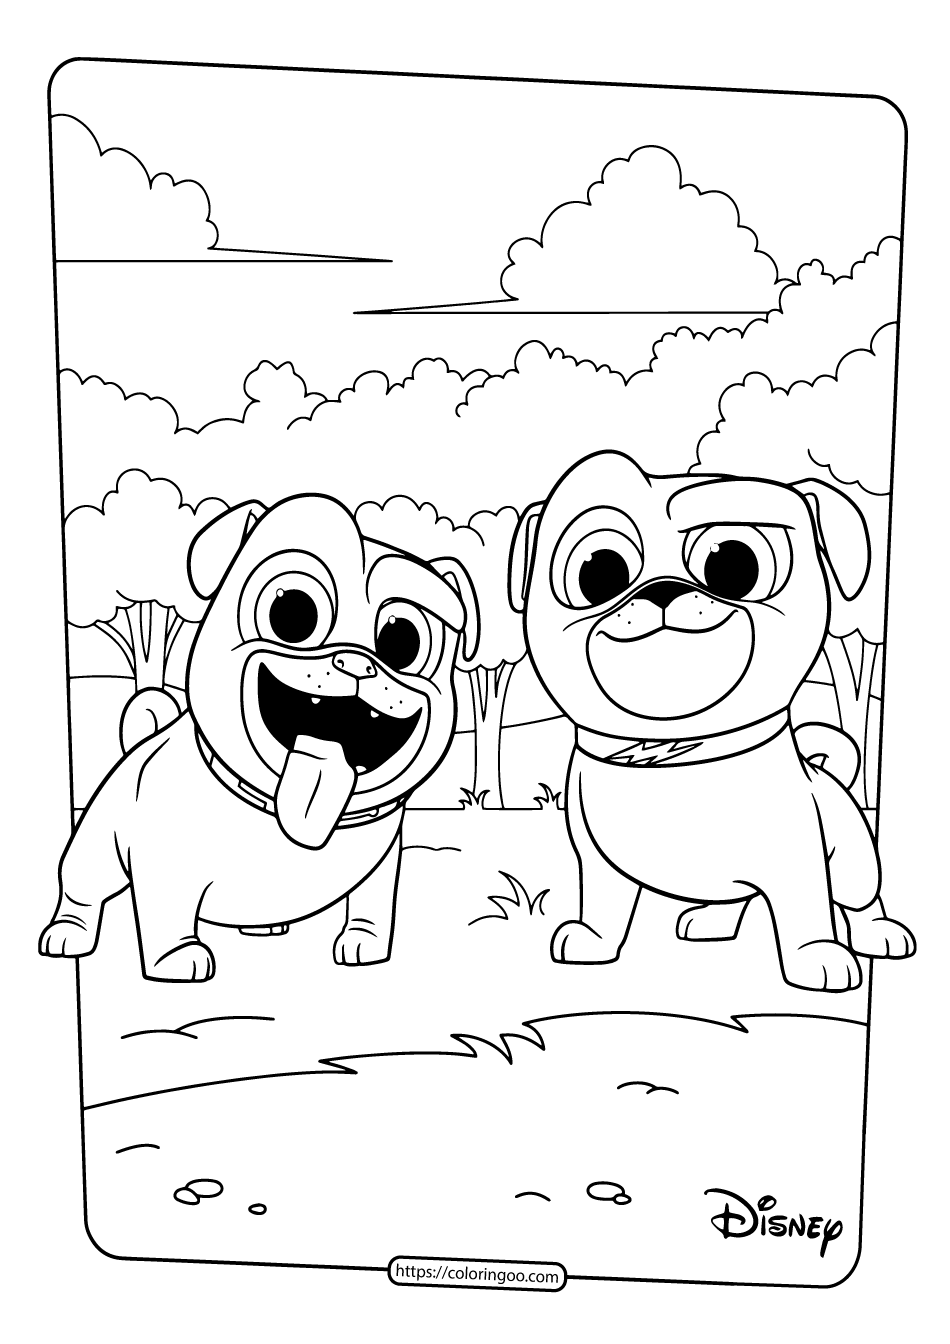 Puppy Dog Pals Coloring Page Activity | Disney Family | 1344x950